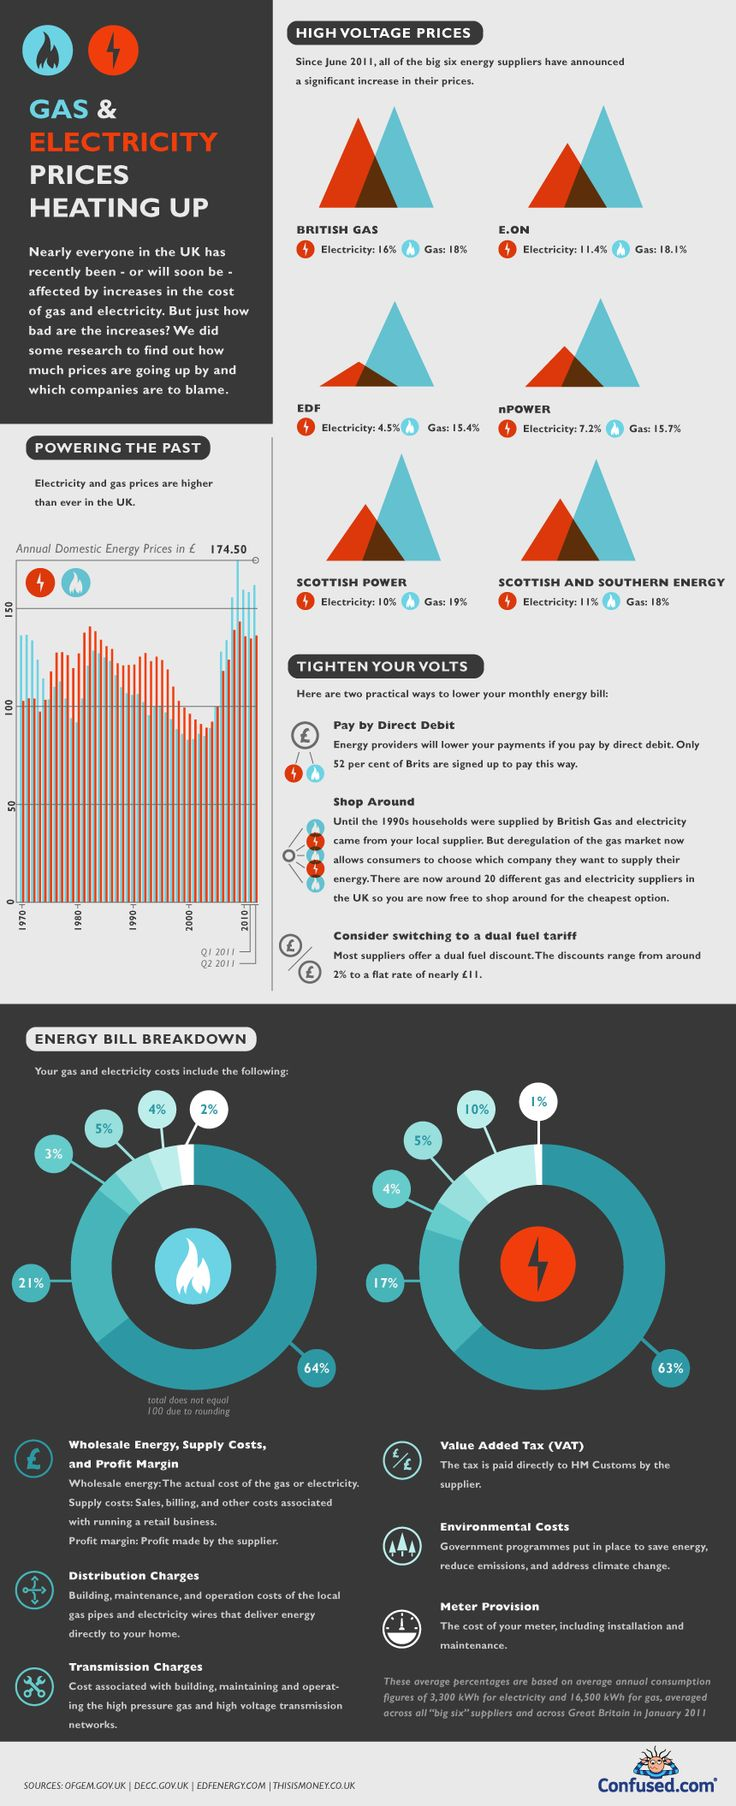 Energy price rises explained | Visit our new infographic gallery at visualoop.com/